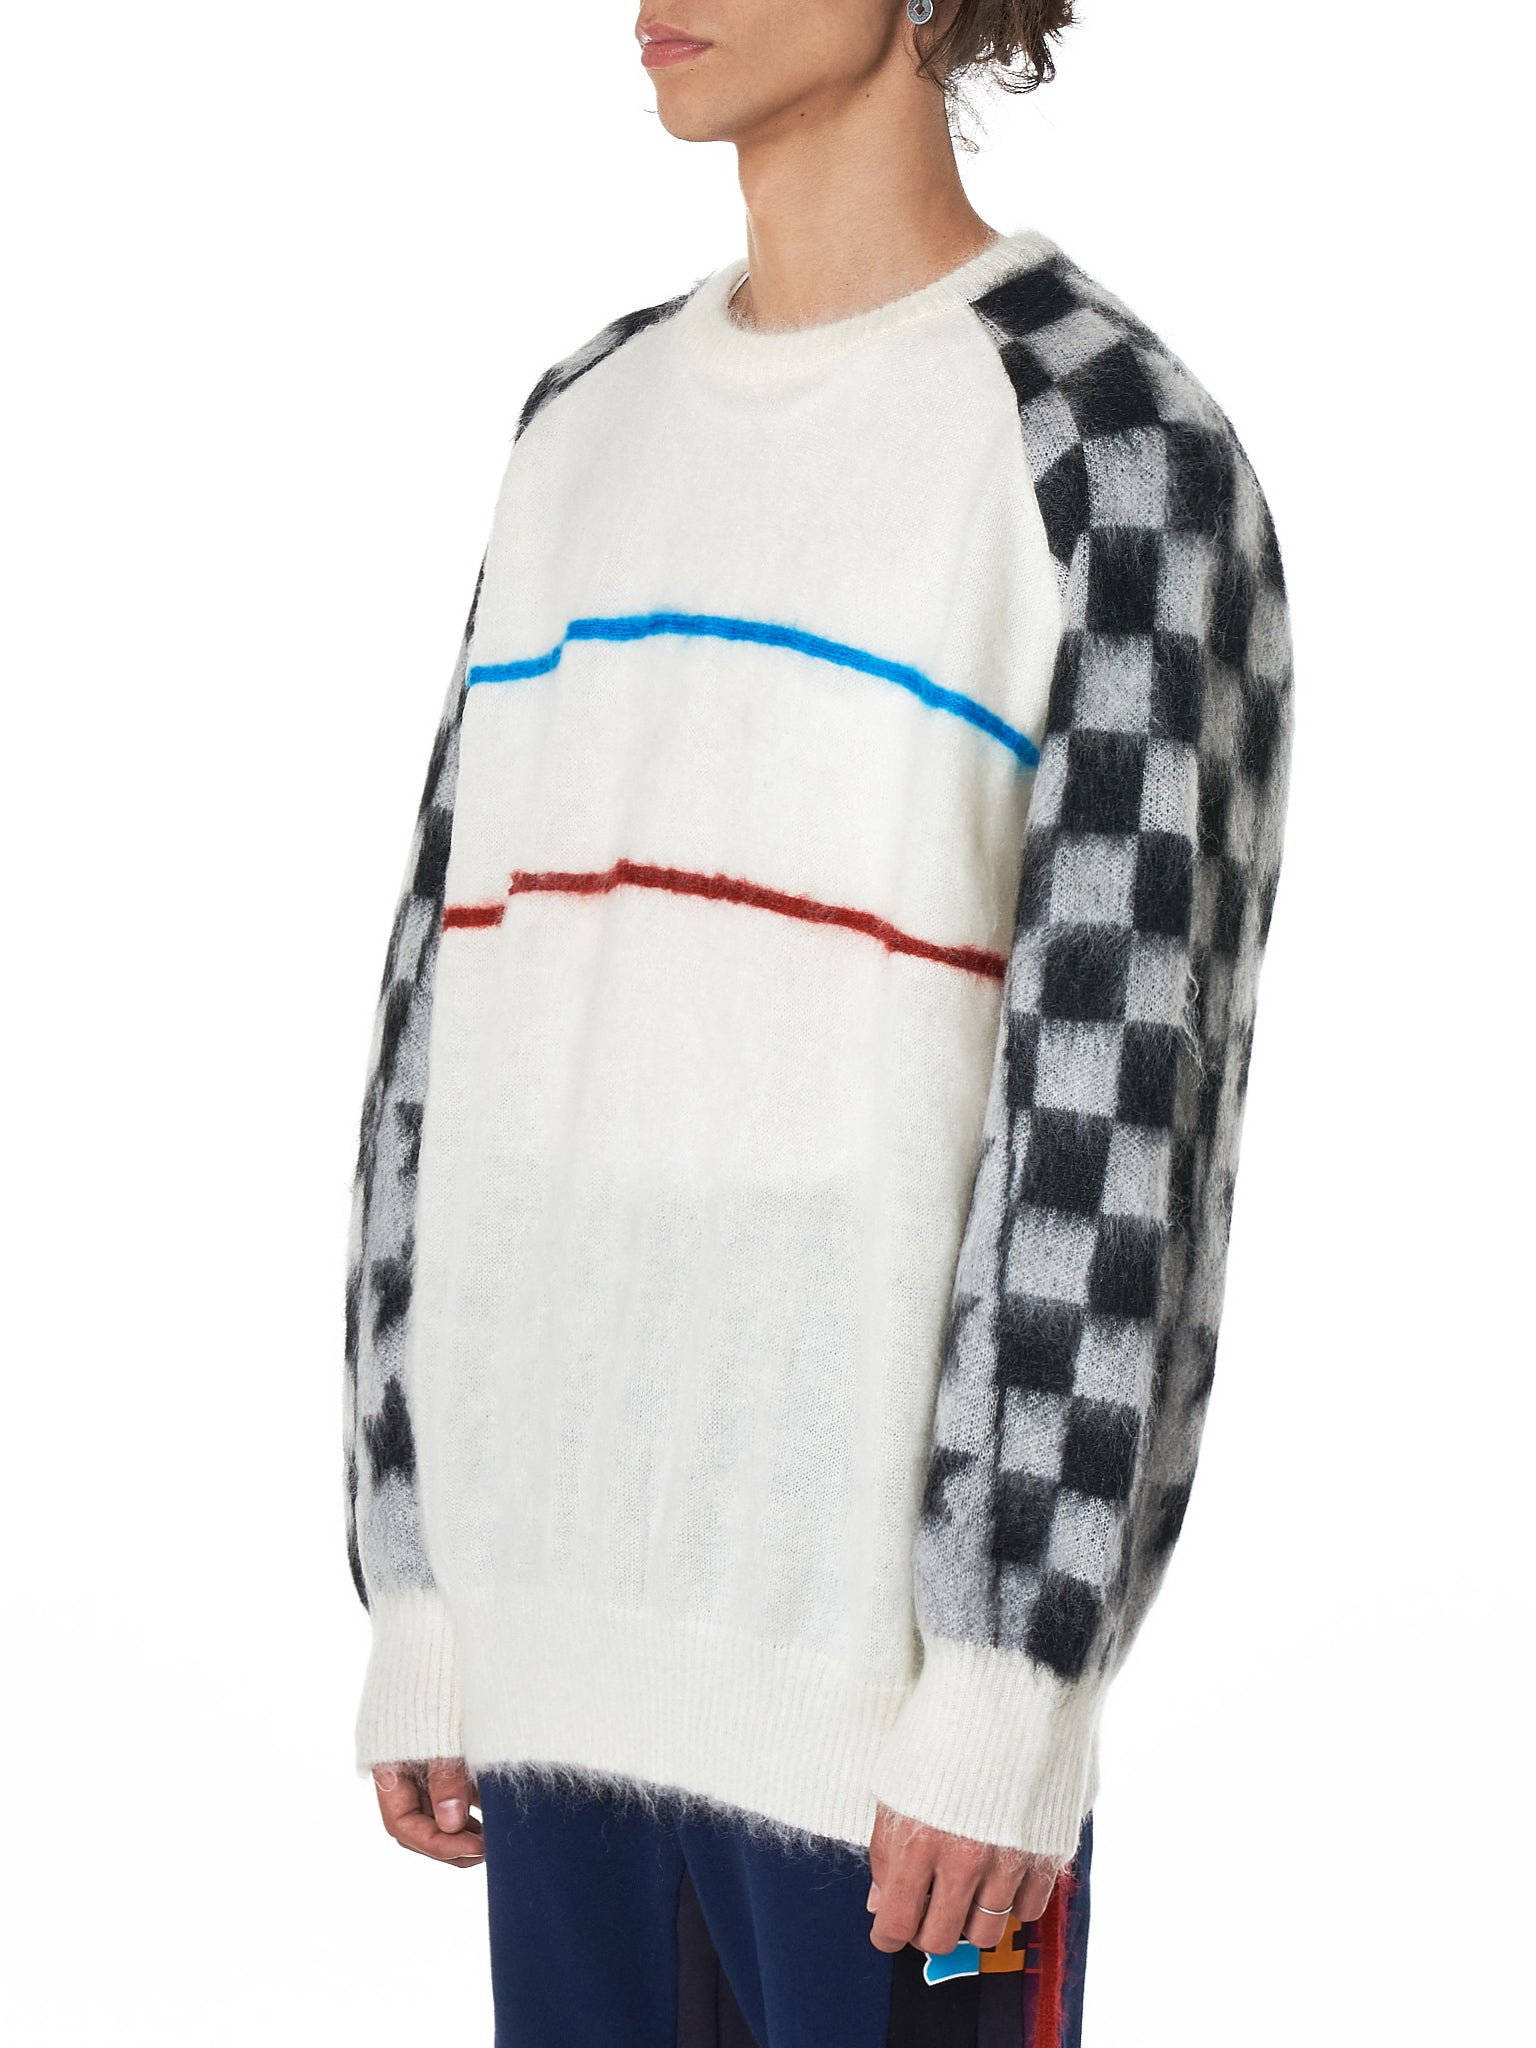 Facetasm Sweater - Hlorenzo Side